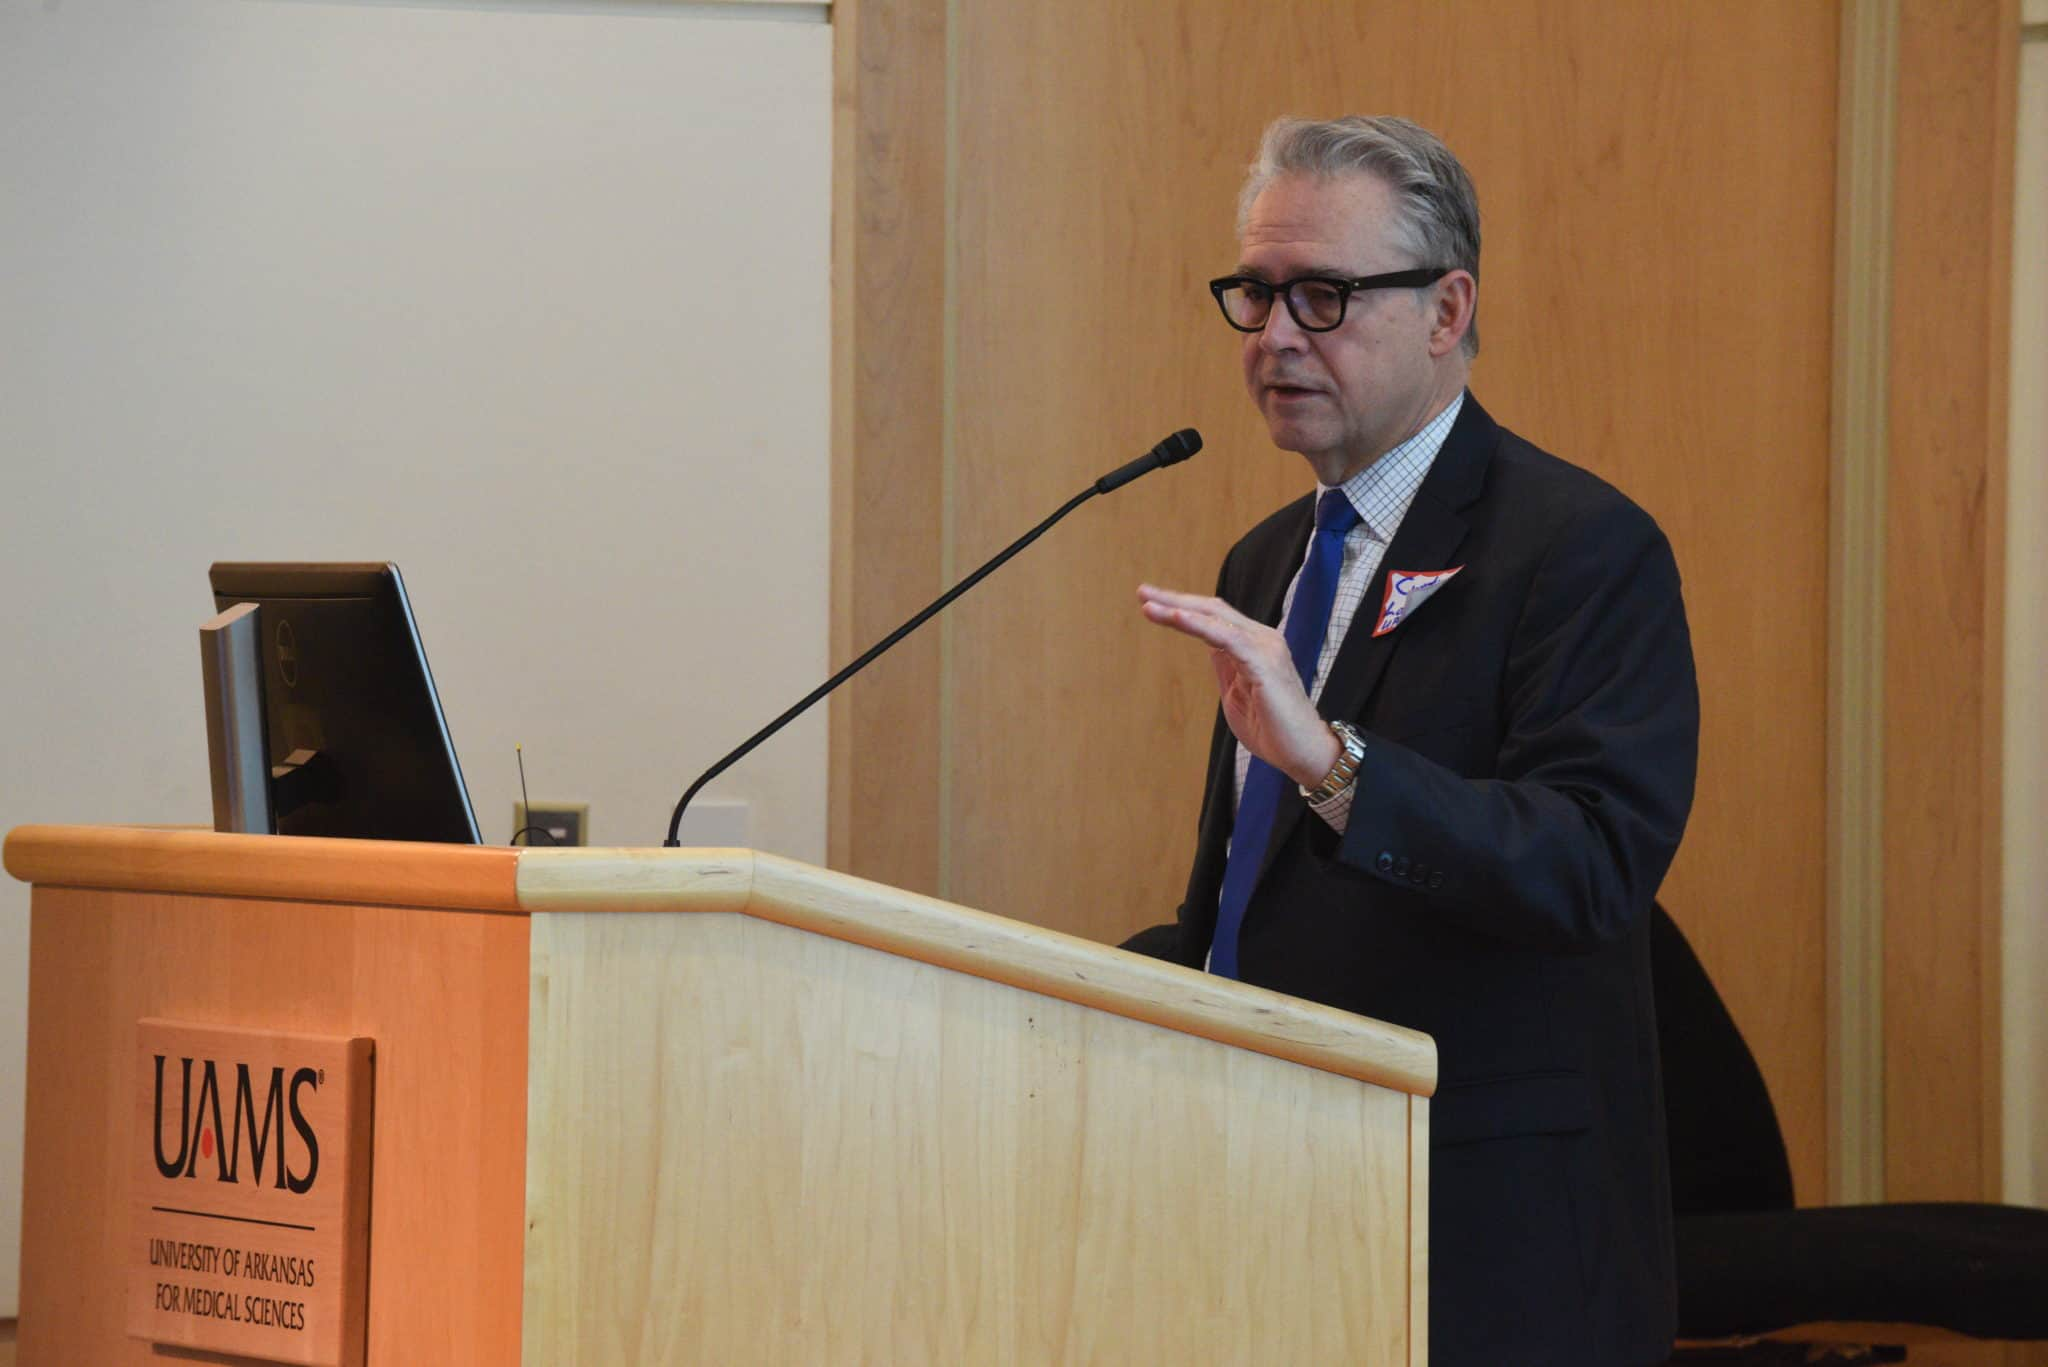 Curtis Lowery, M.D., welcomed the 80-plus attendees to UAMS' first Digital Health Conference.